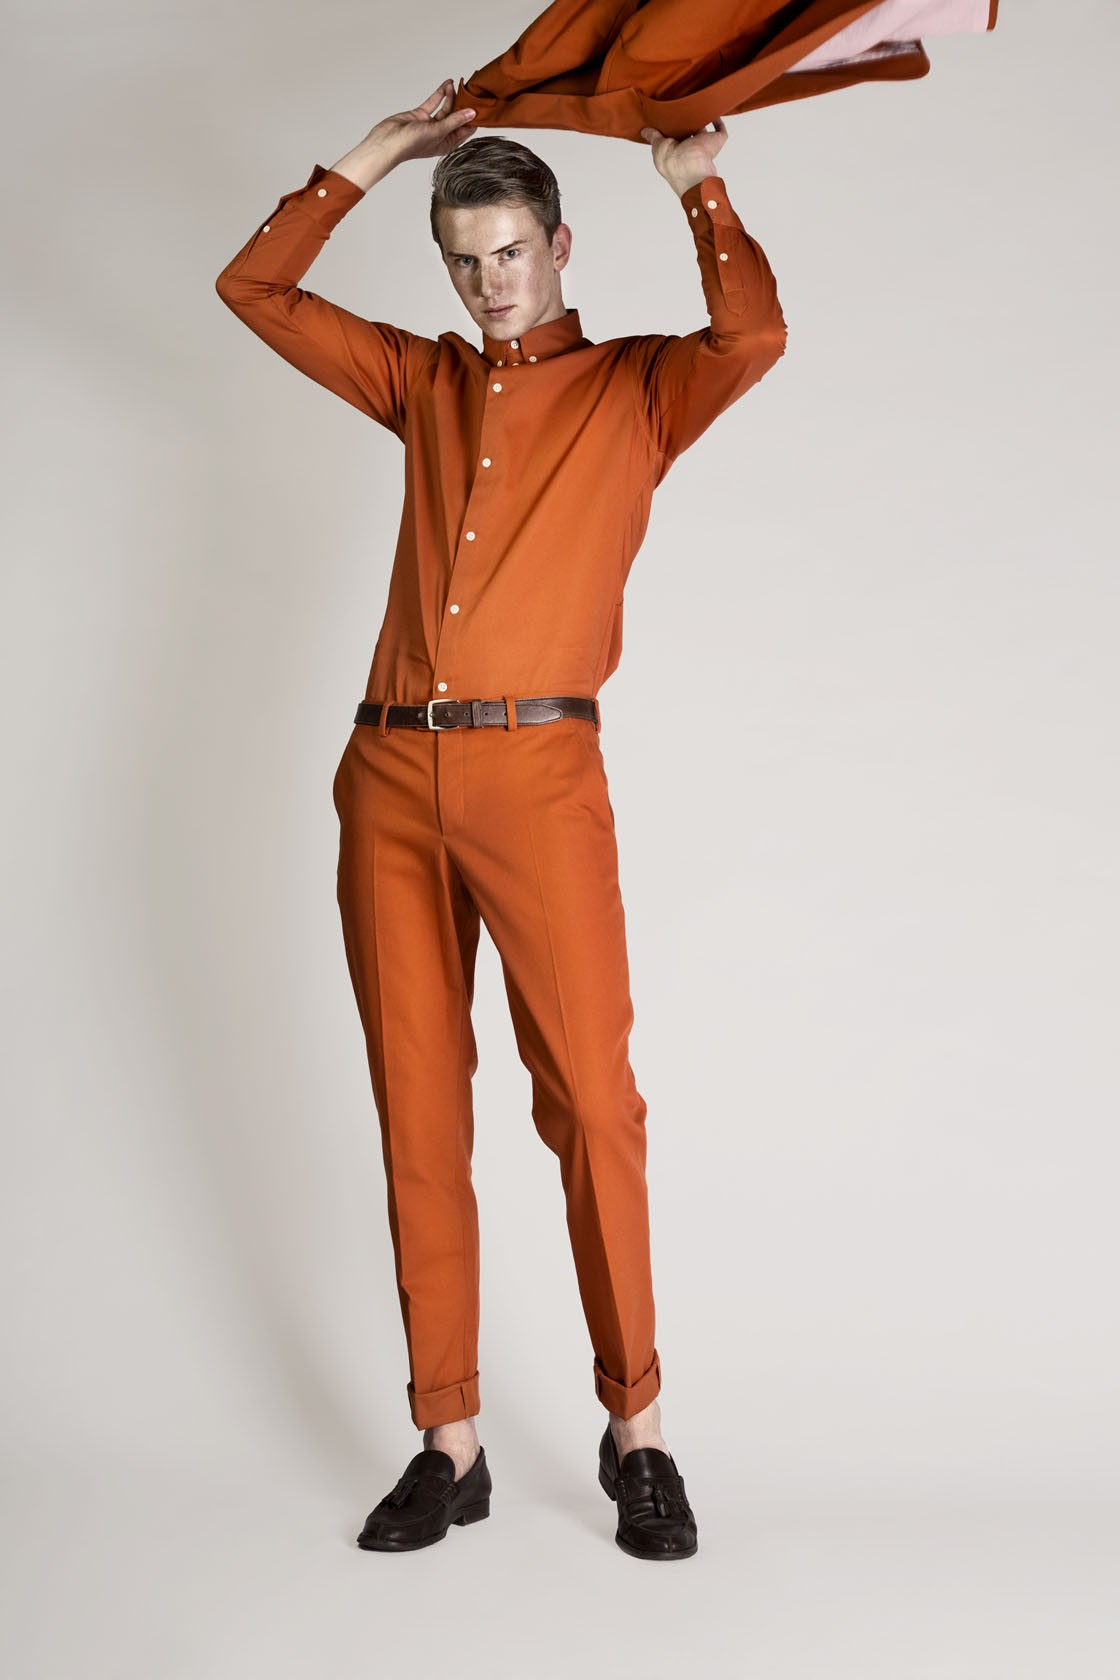 AARON TROUSERS- ORANGE $350.00